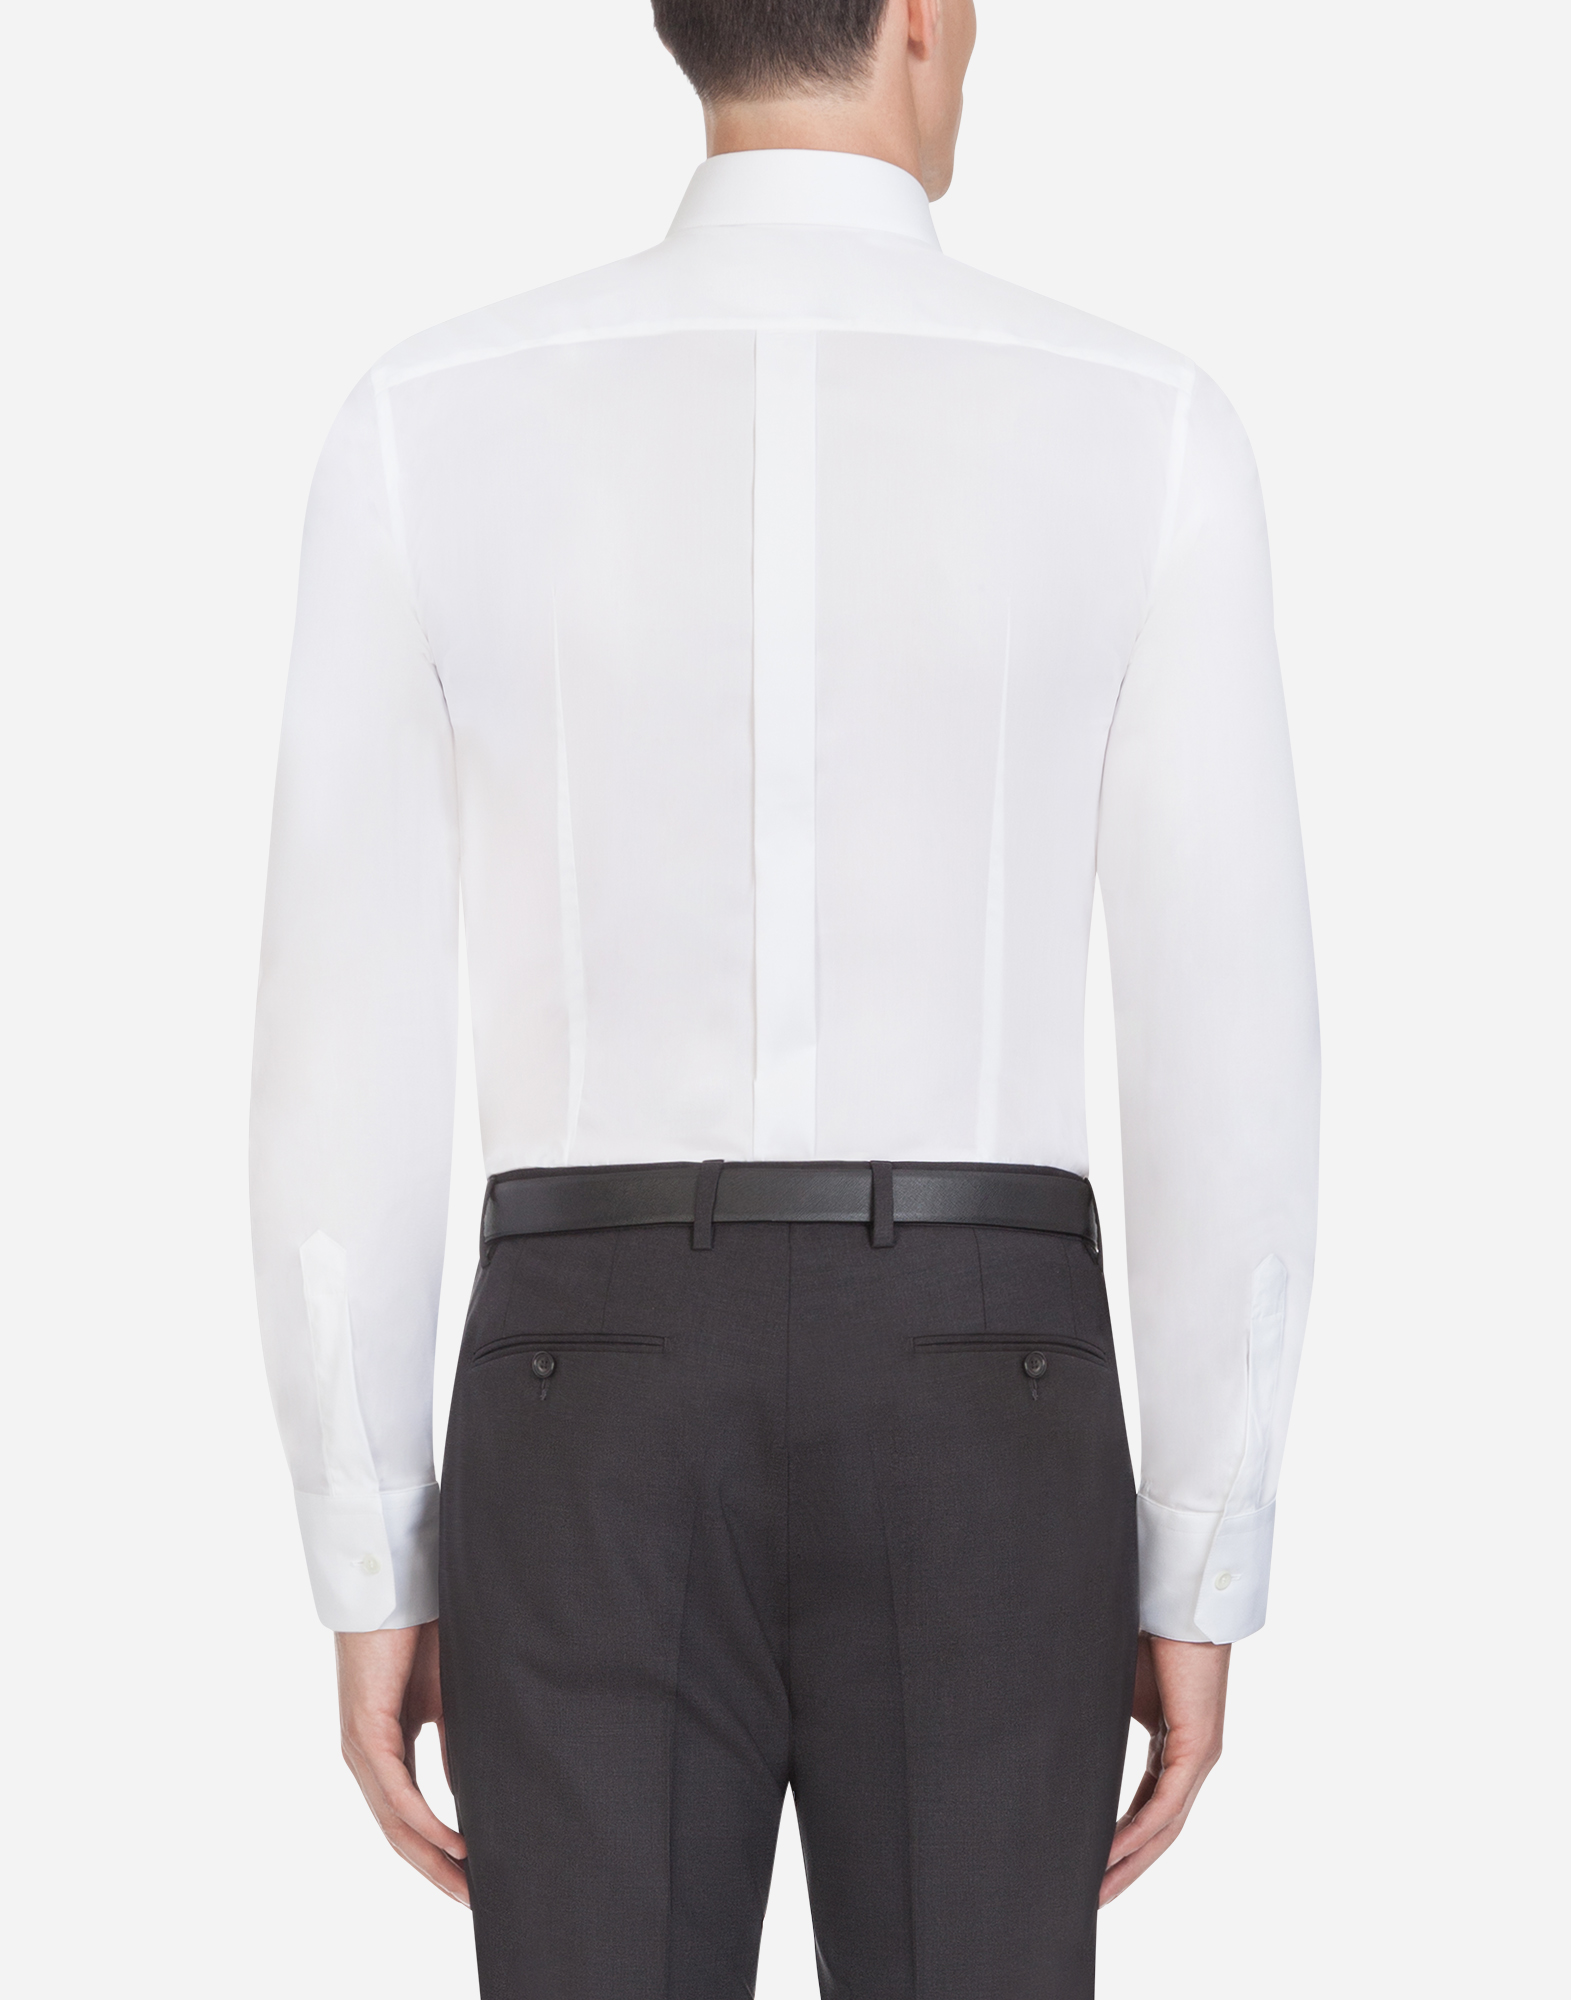 Dolce & Gabbana SHIRT IN STRETCH COTTON POPLIN